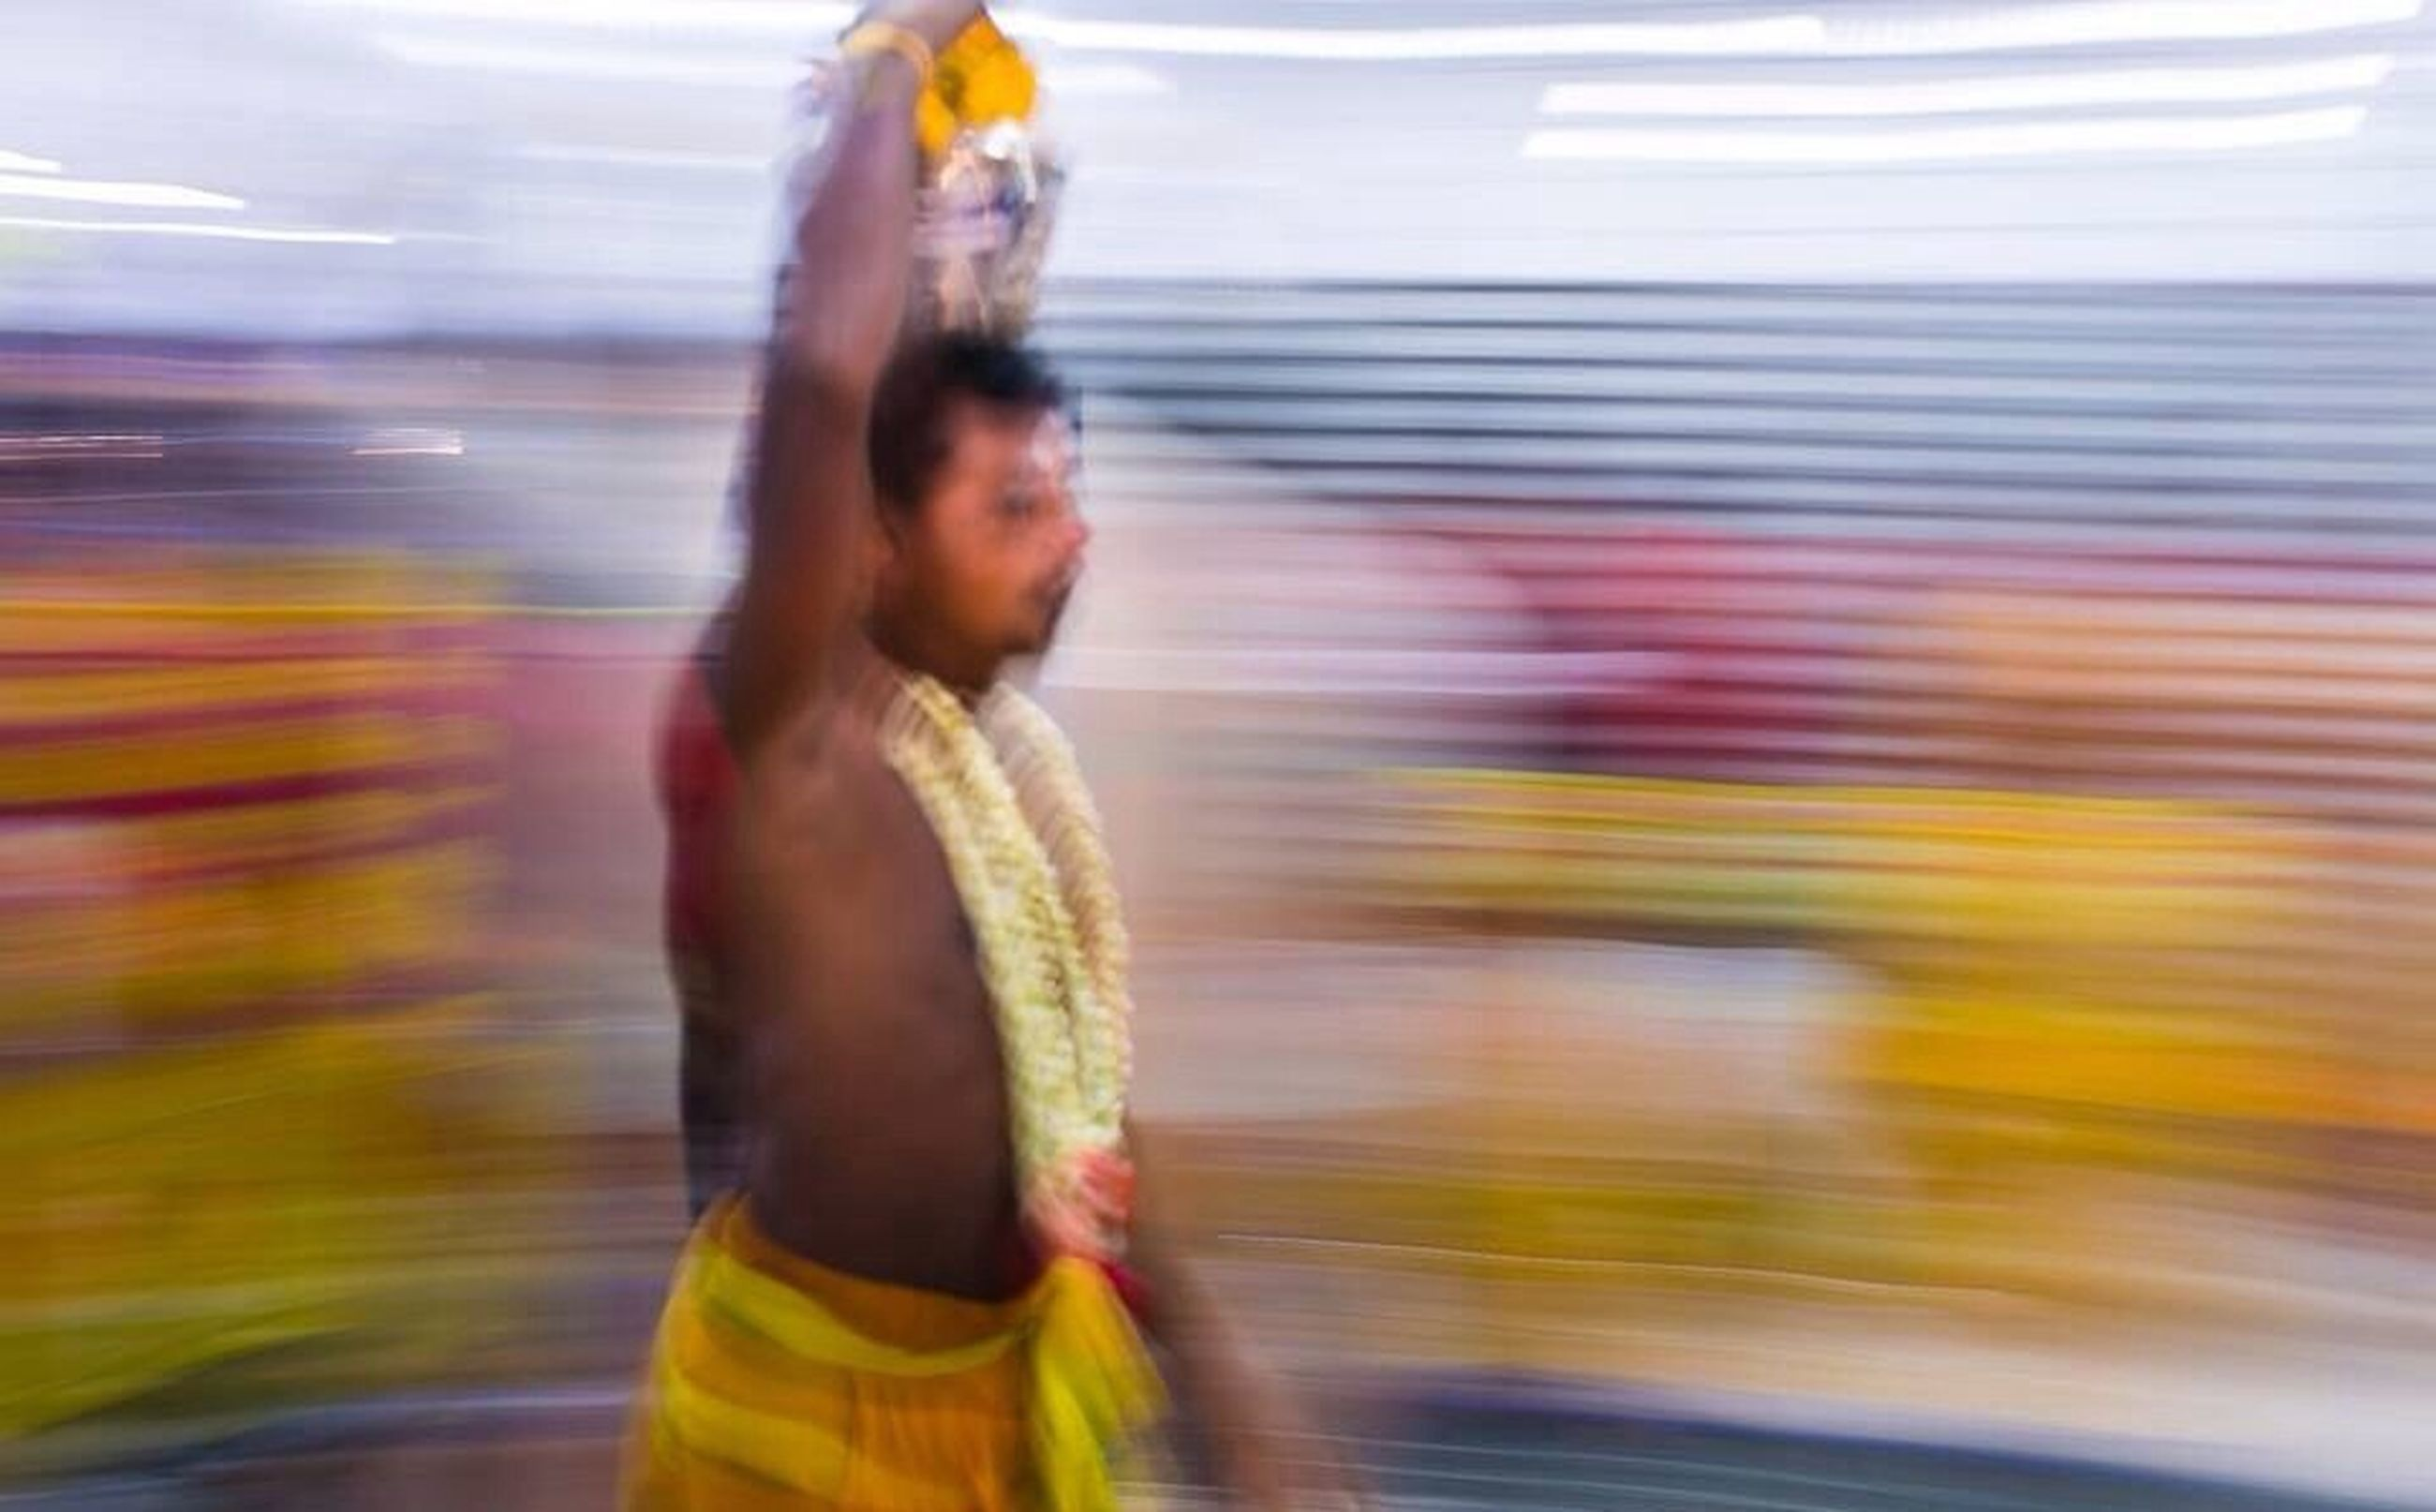 blurred motion, transportation, motion, lifestyles, speed, on the move, car, leisure activity, casual clothing, mode of transport, travel, rear view, side view, road, standing, street, three quarter length, glass - material